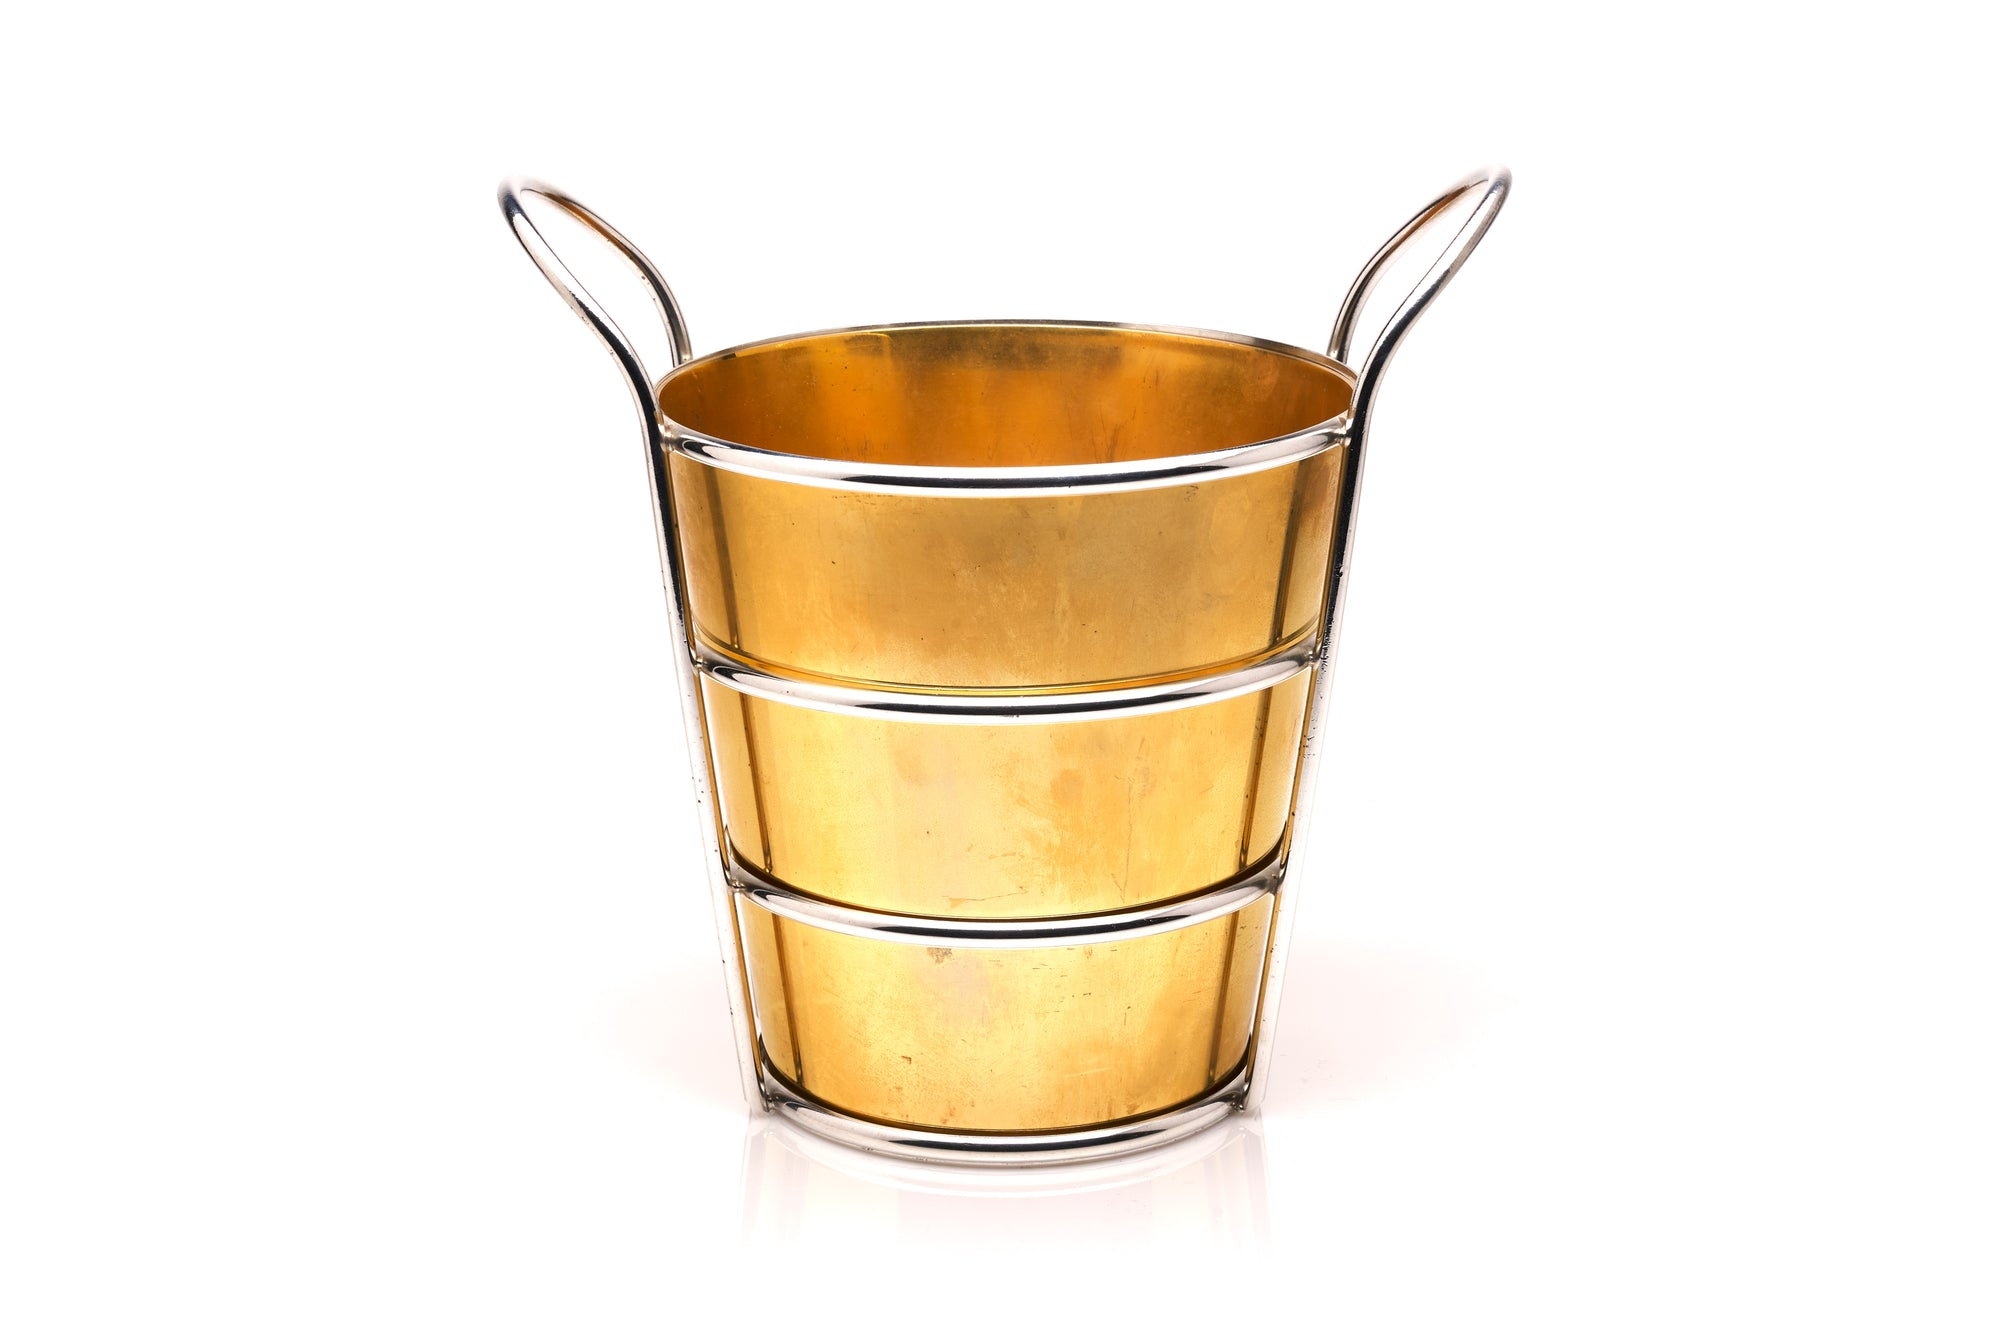 Cartier Champagne Bucket